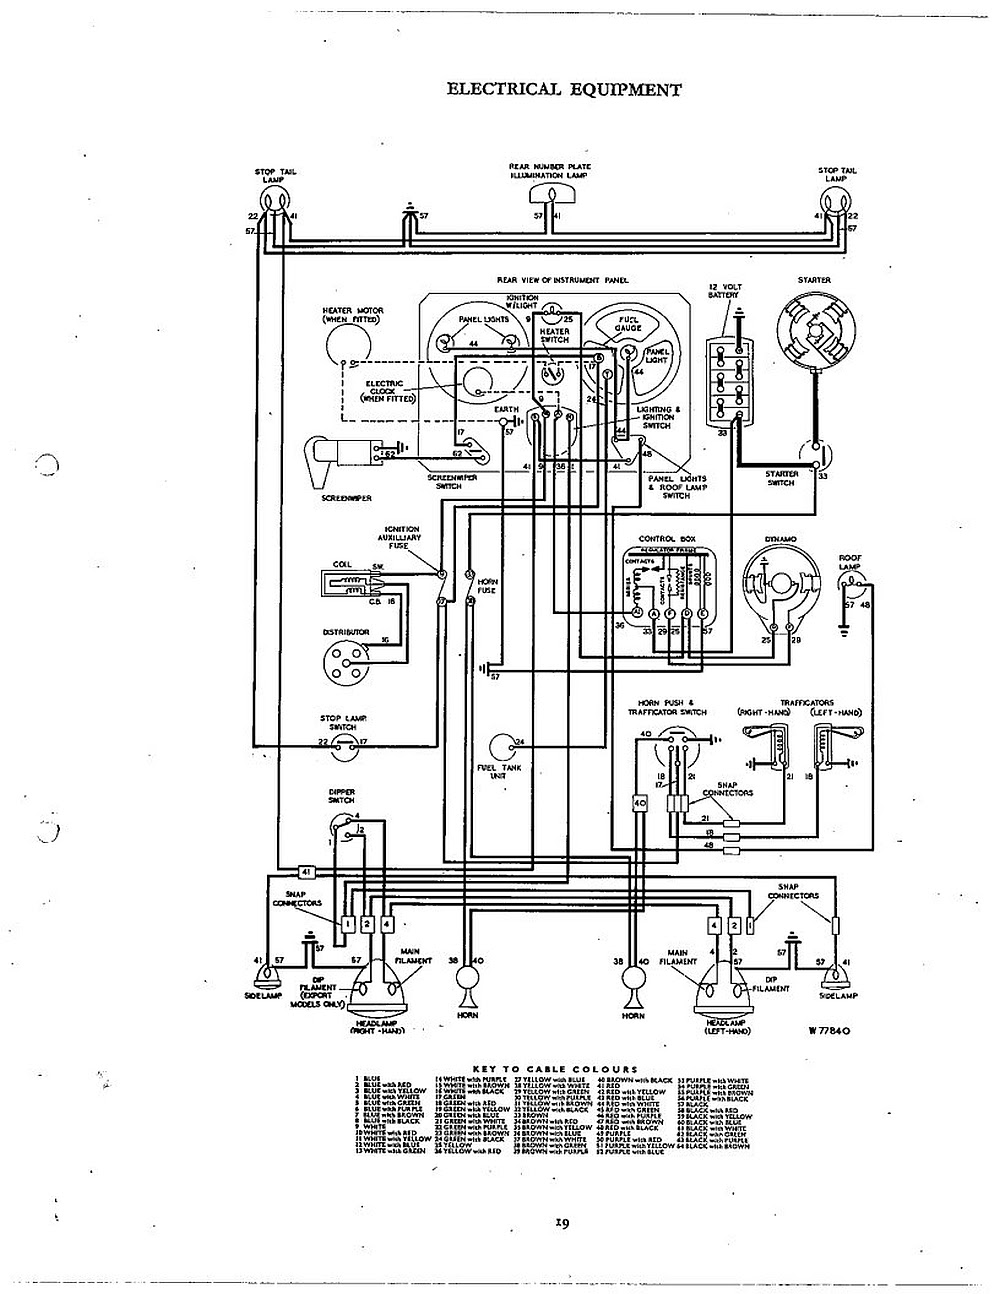 Car Wiring Diagrams Uk 5 3 Ls1 Wiring Harness Diagrams For Wiring Diagram Schematics